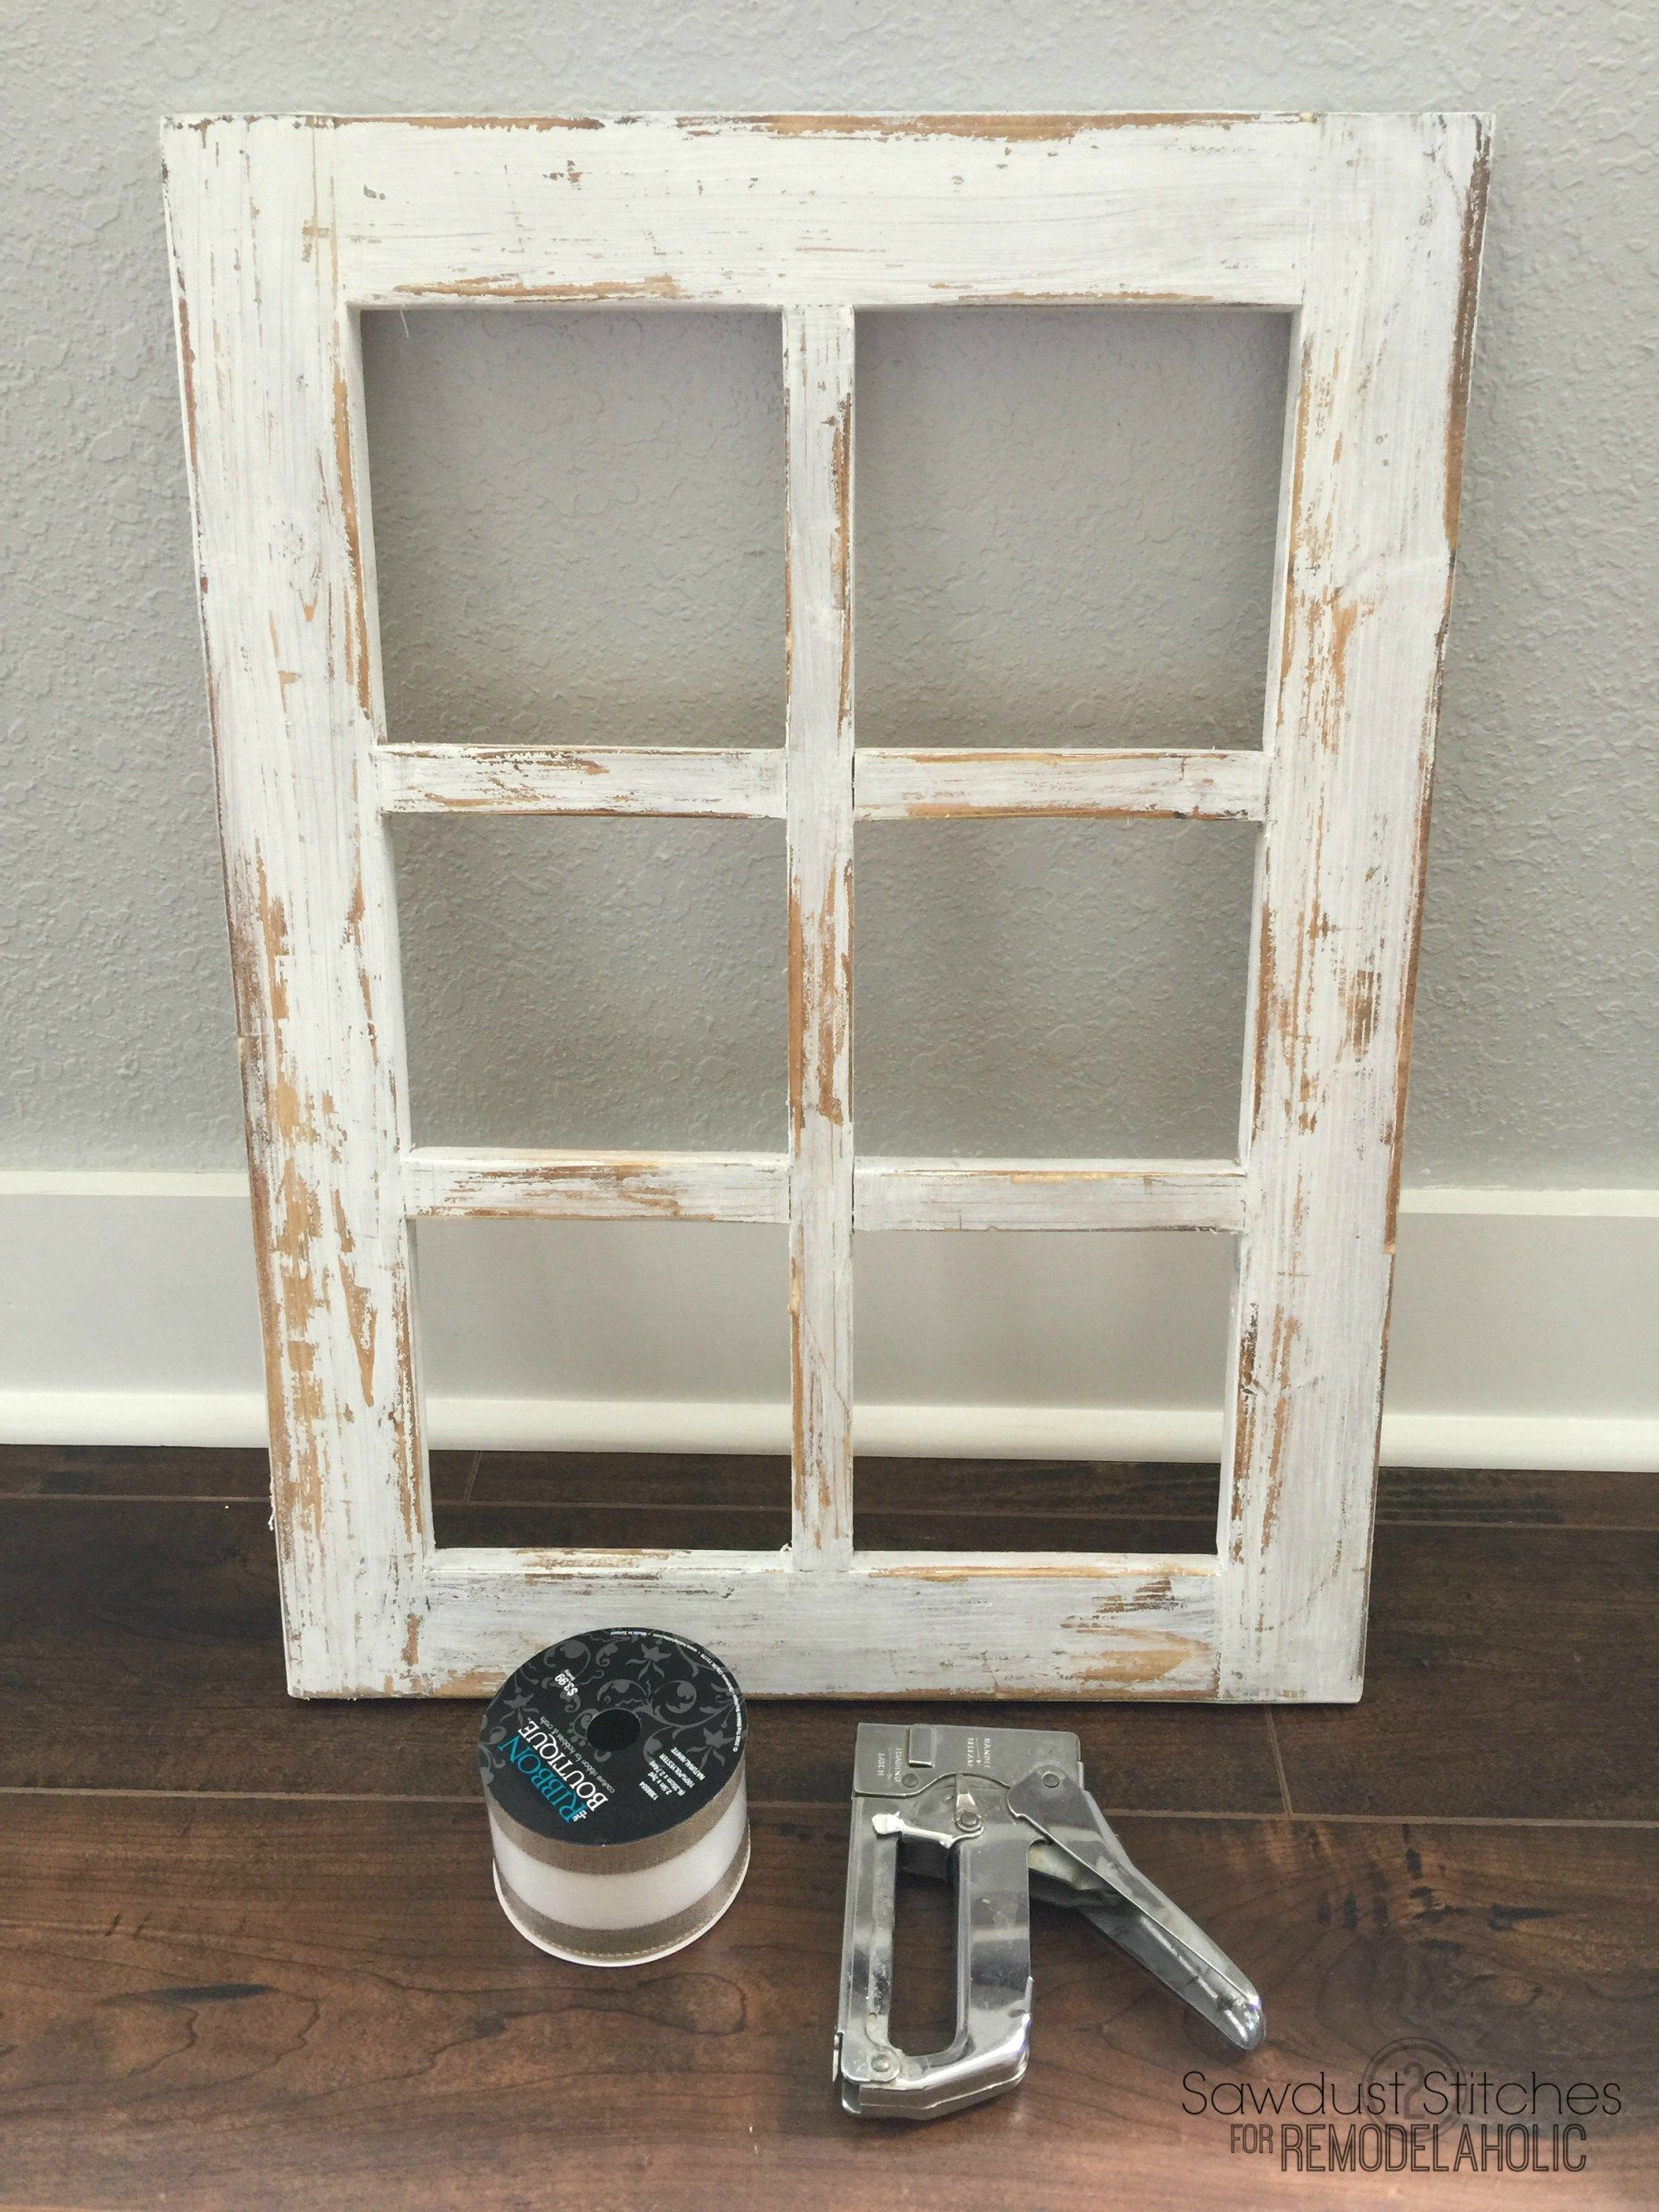 Rustic Window Frame By Sawdust2Stitches For Remodelaholic.com 6 ...